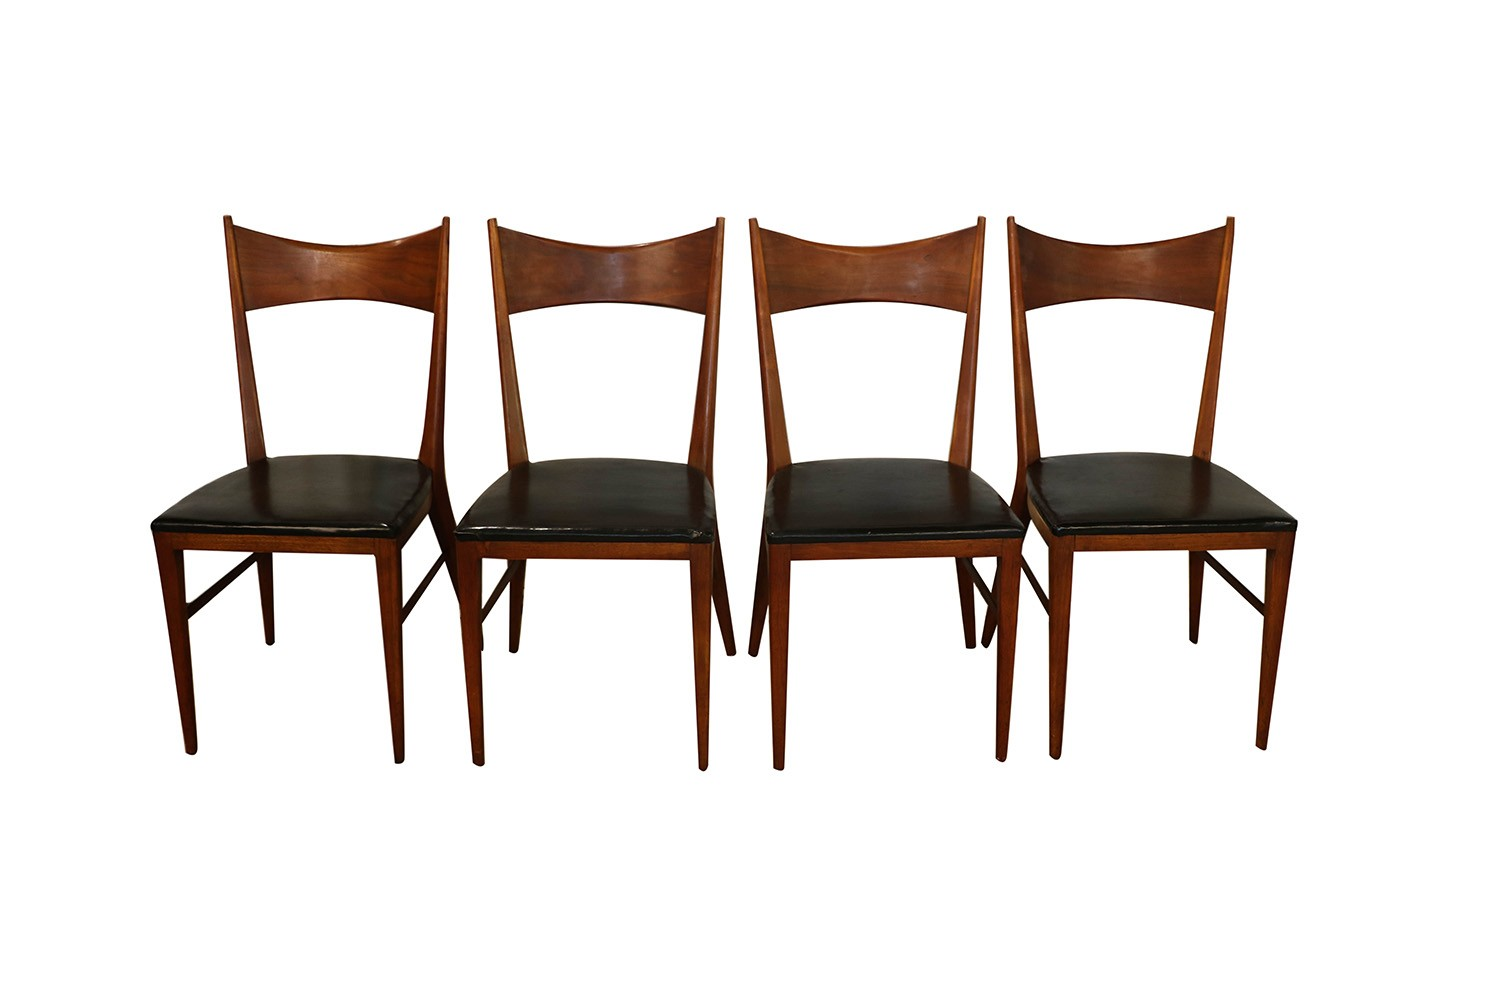 Paul Mccobb Chairs Paul Mccobb For Calvin Dining Chairs